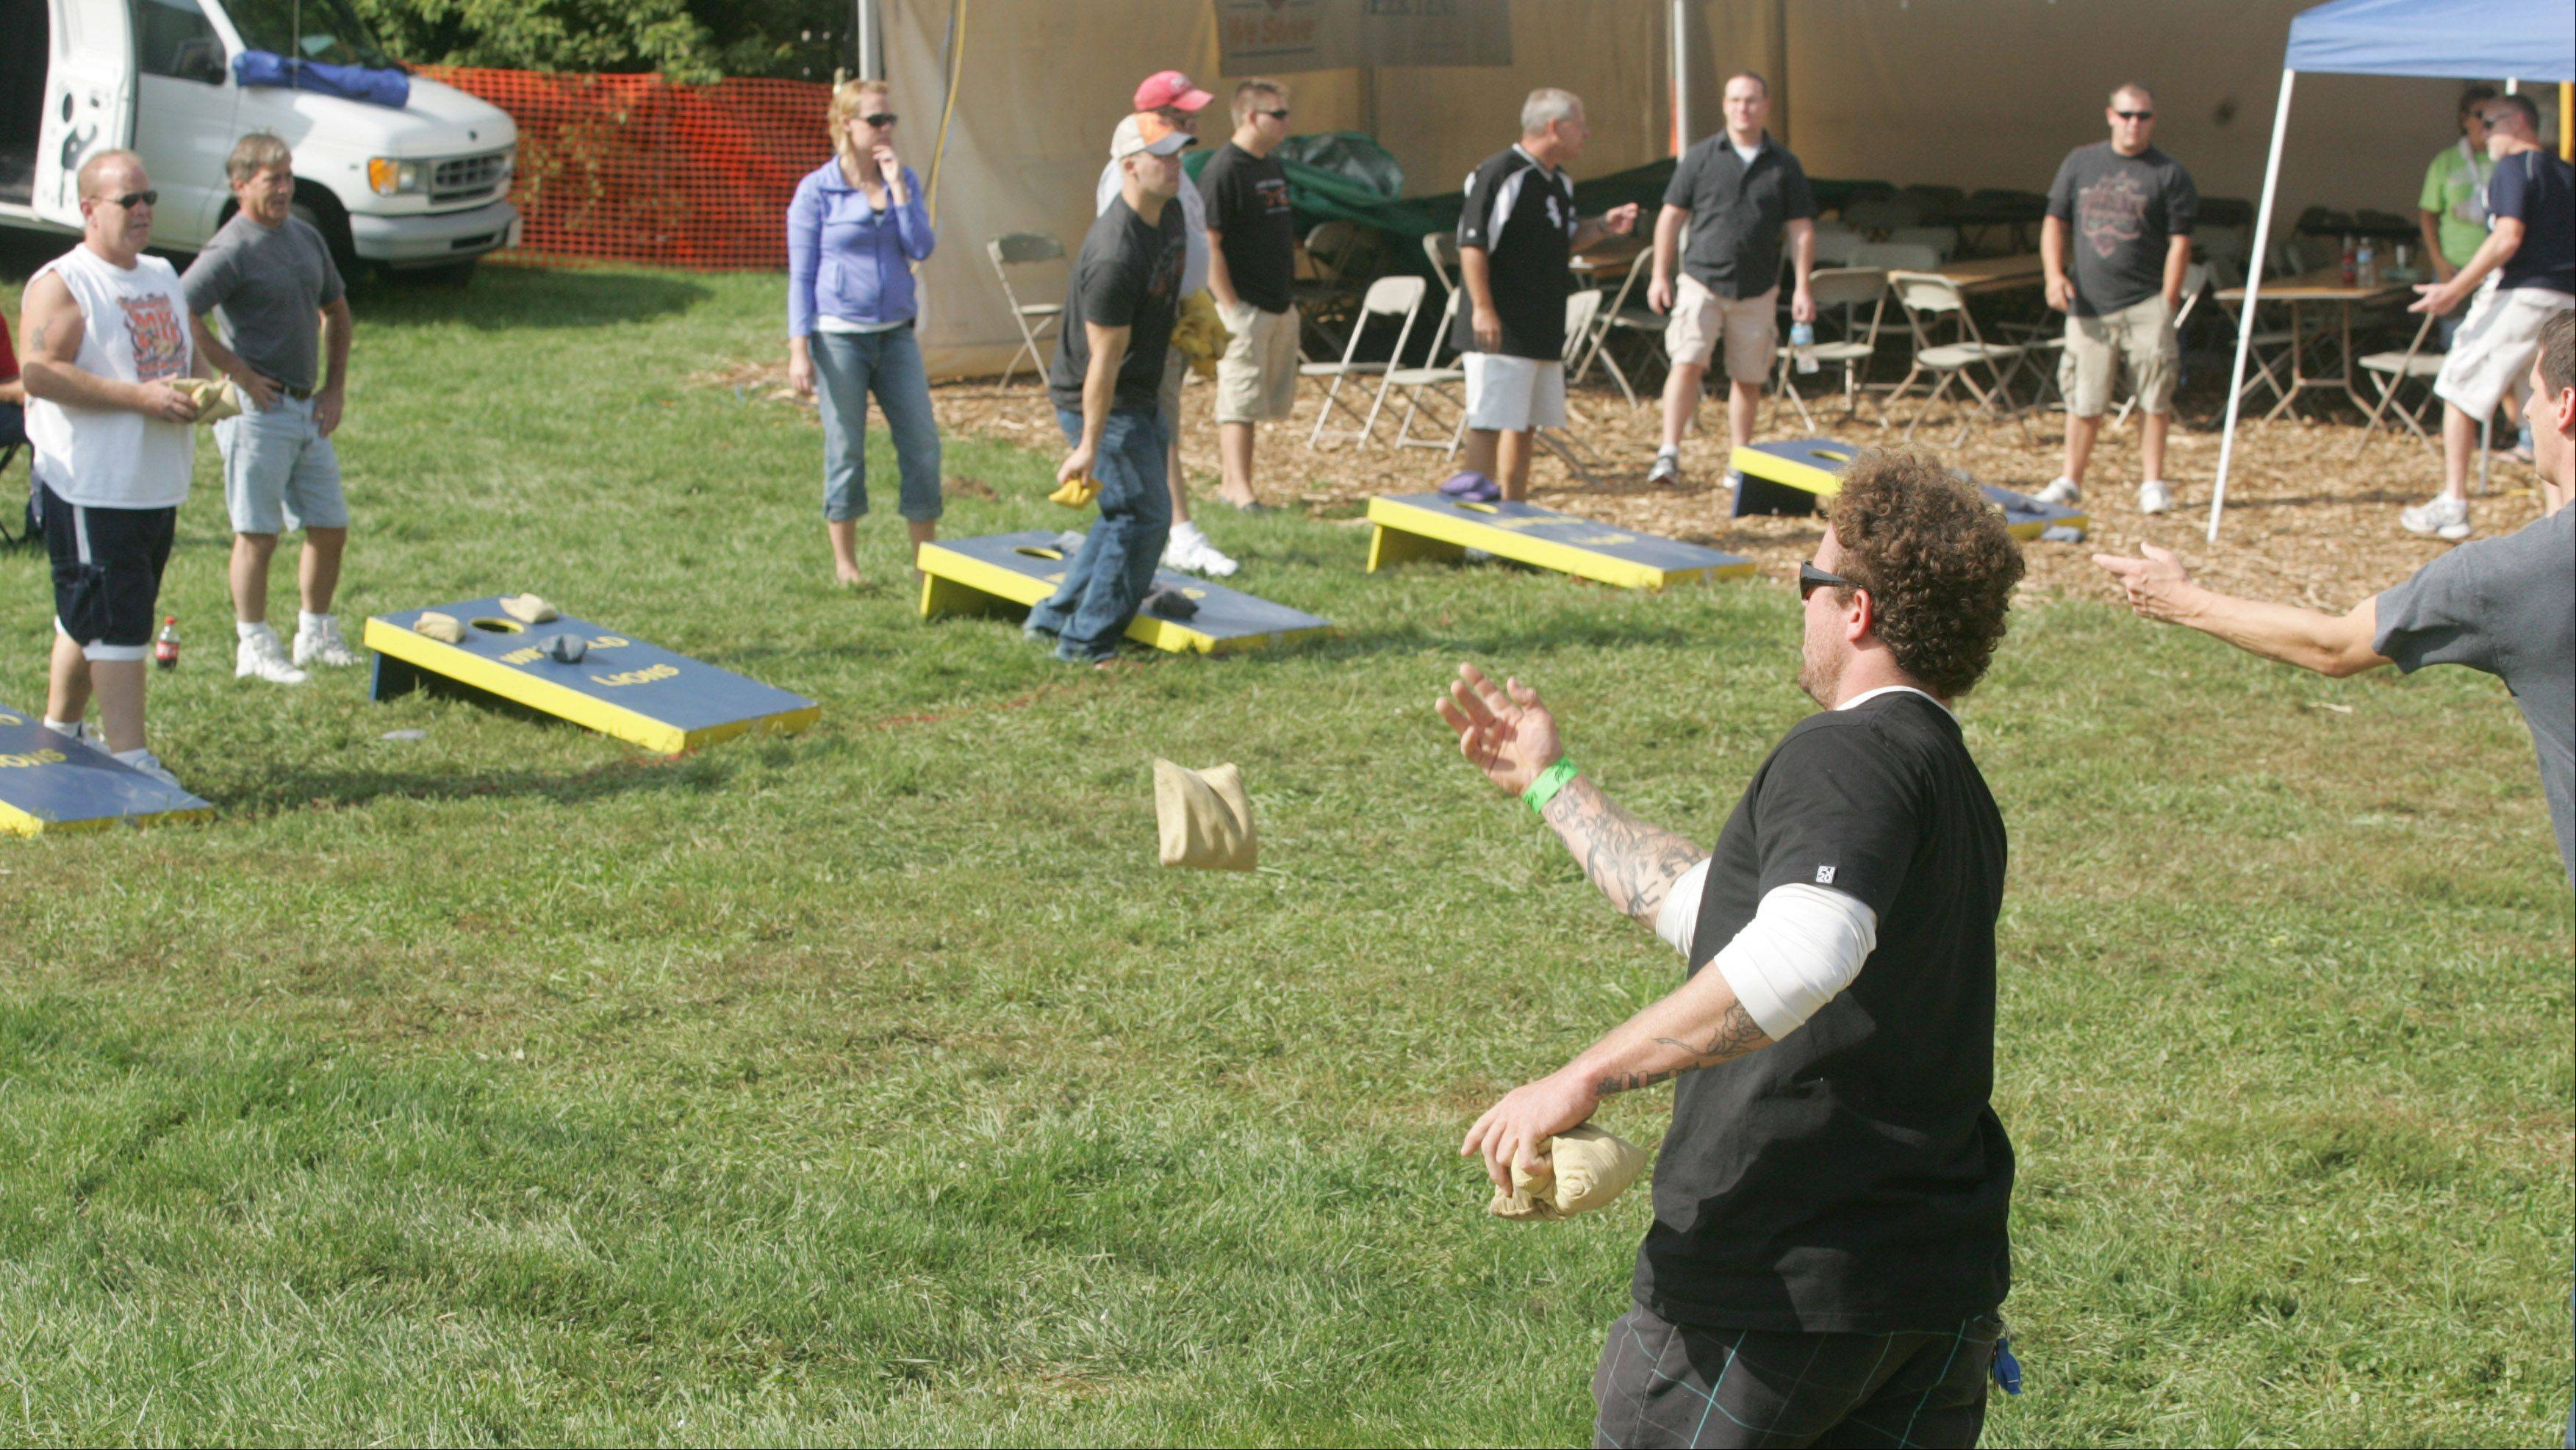 Winfield's Good Old Days festival will include a bags tournament Saturday and Sunday.